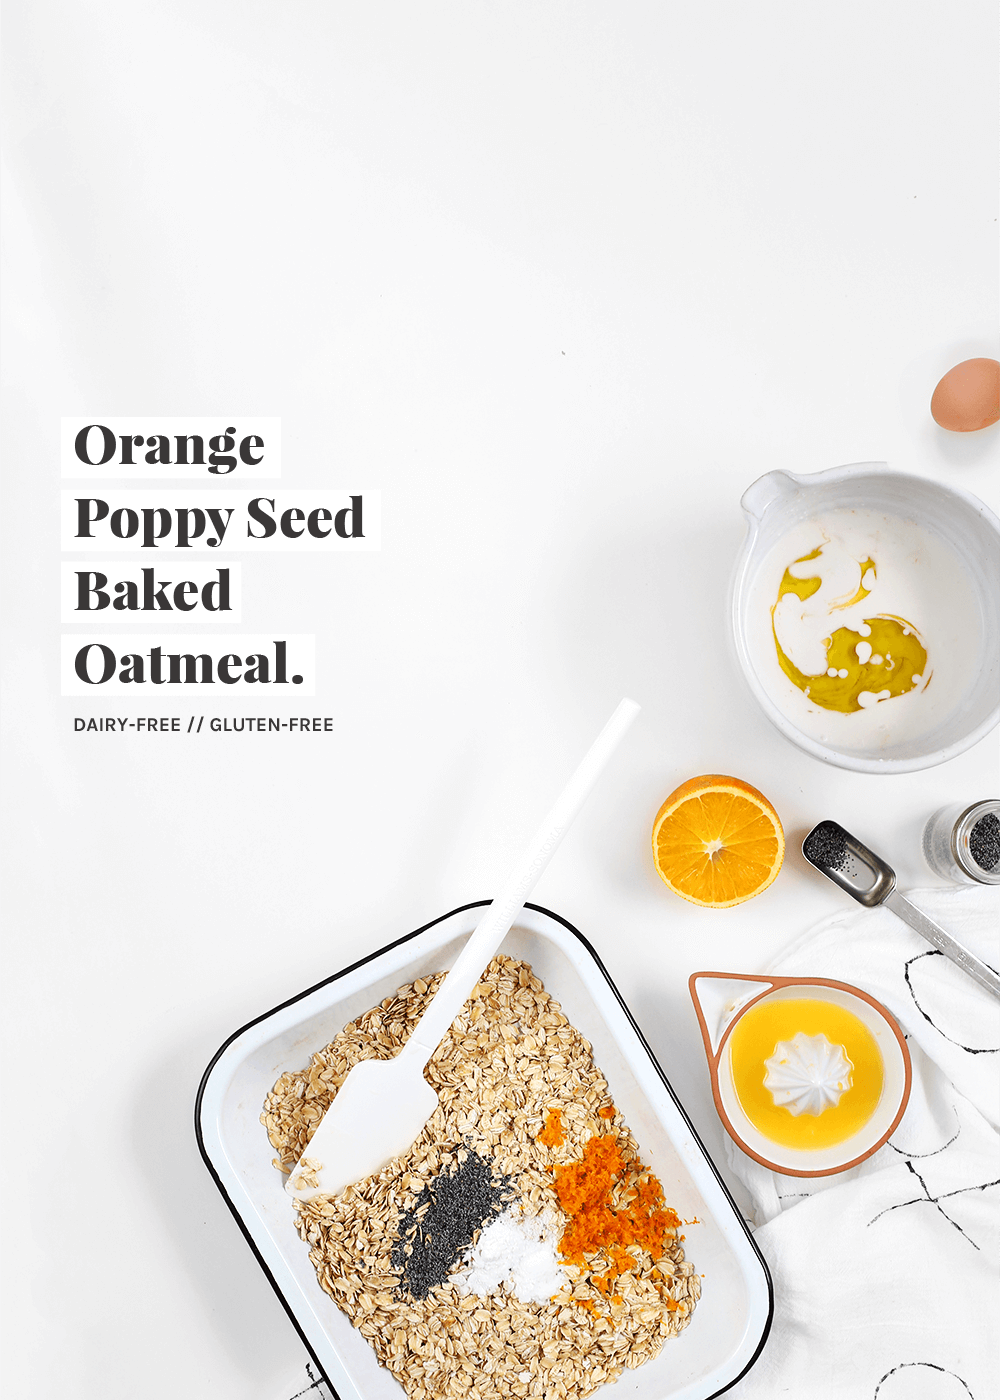 dairy-free and gluten-free Orange poppy seed baked oatmeal recipe from the fauxmartha